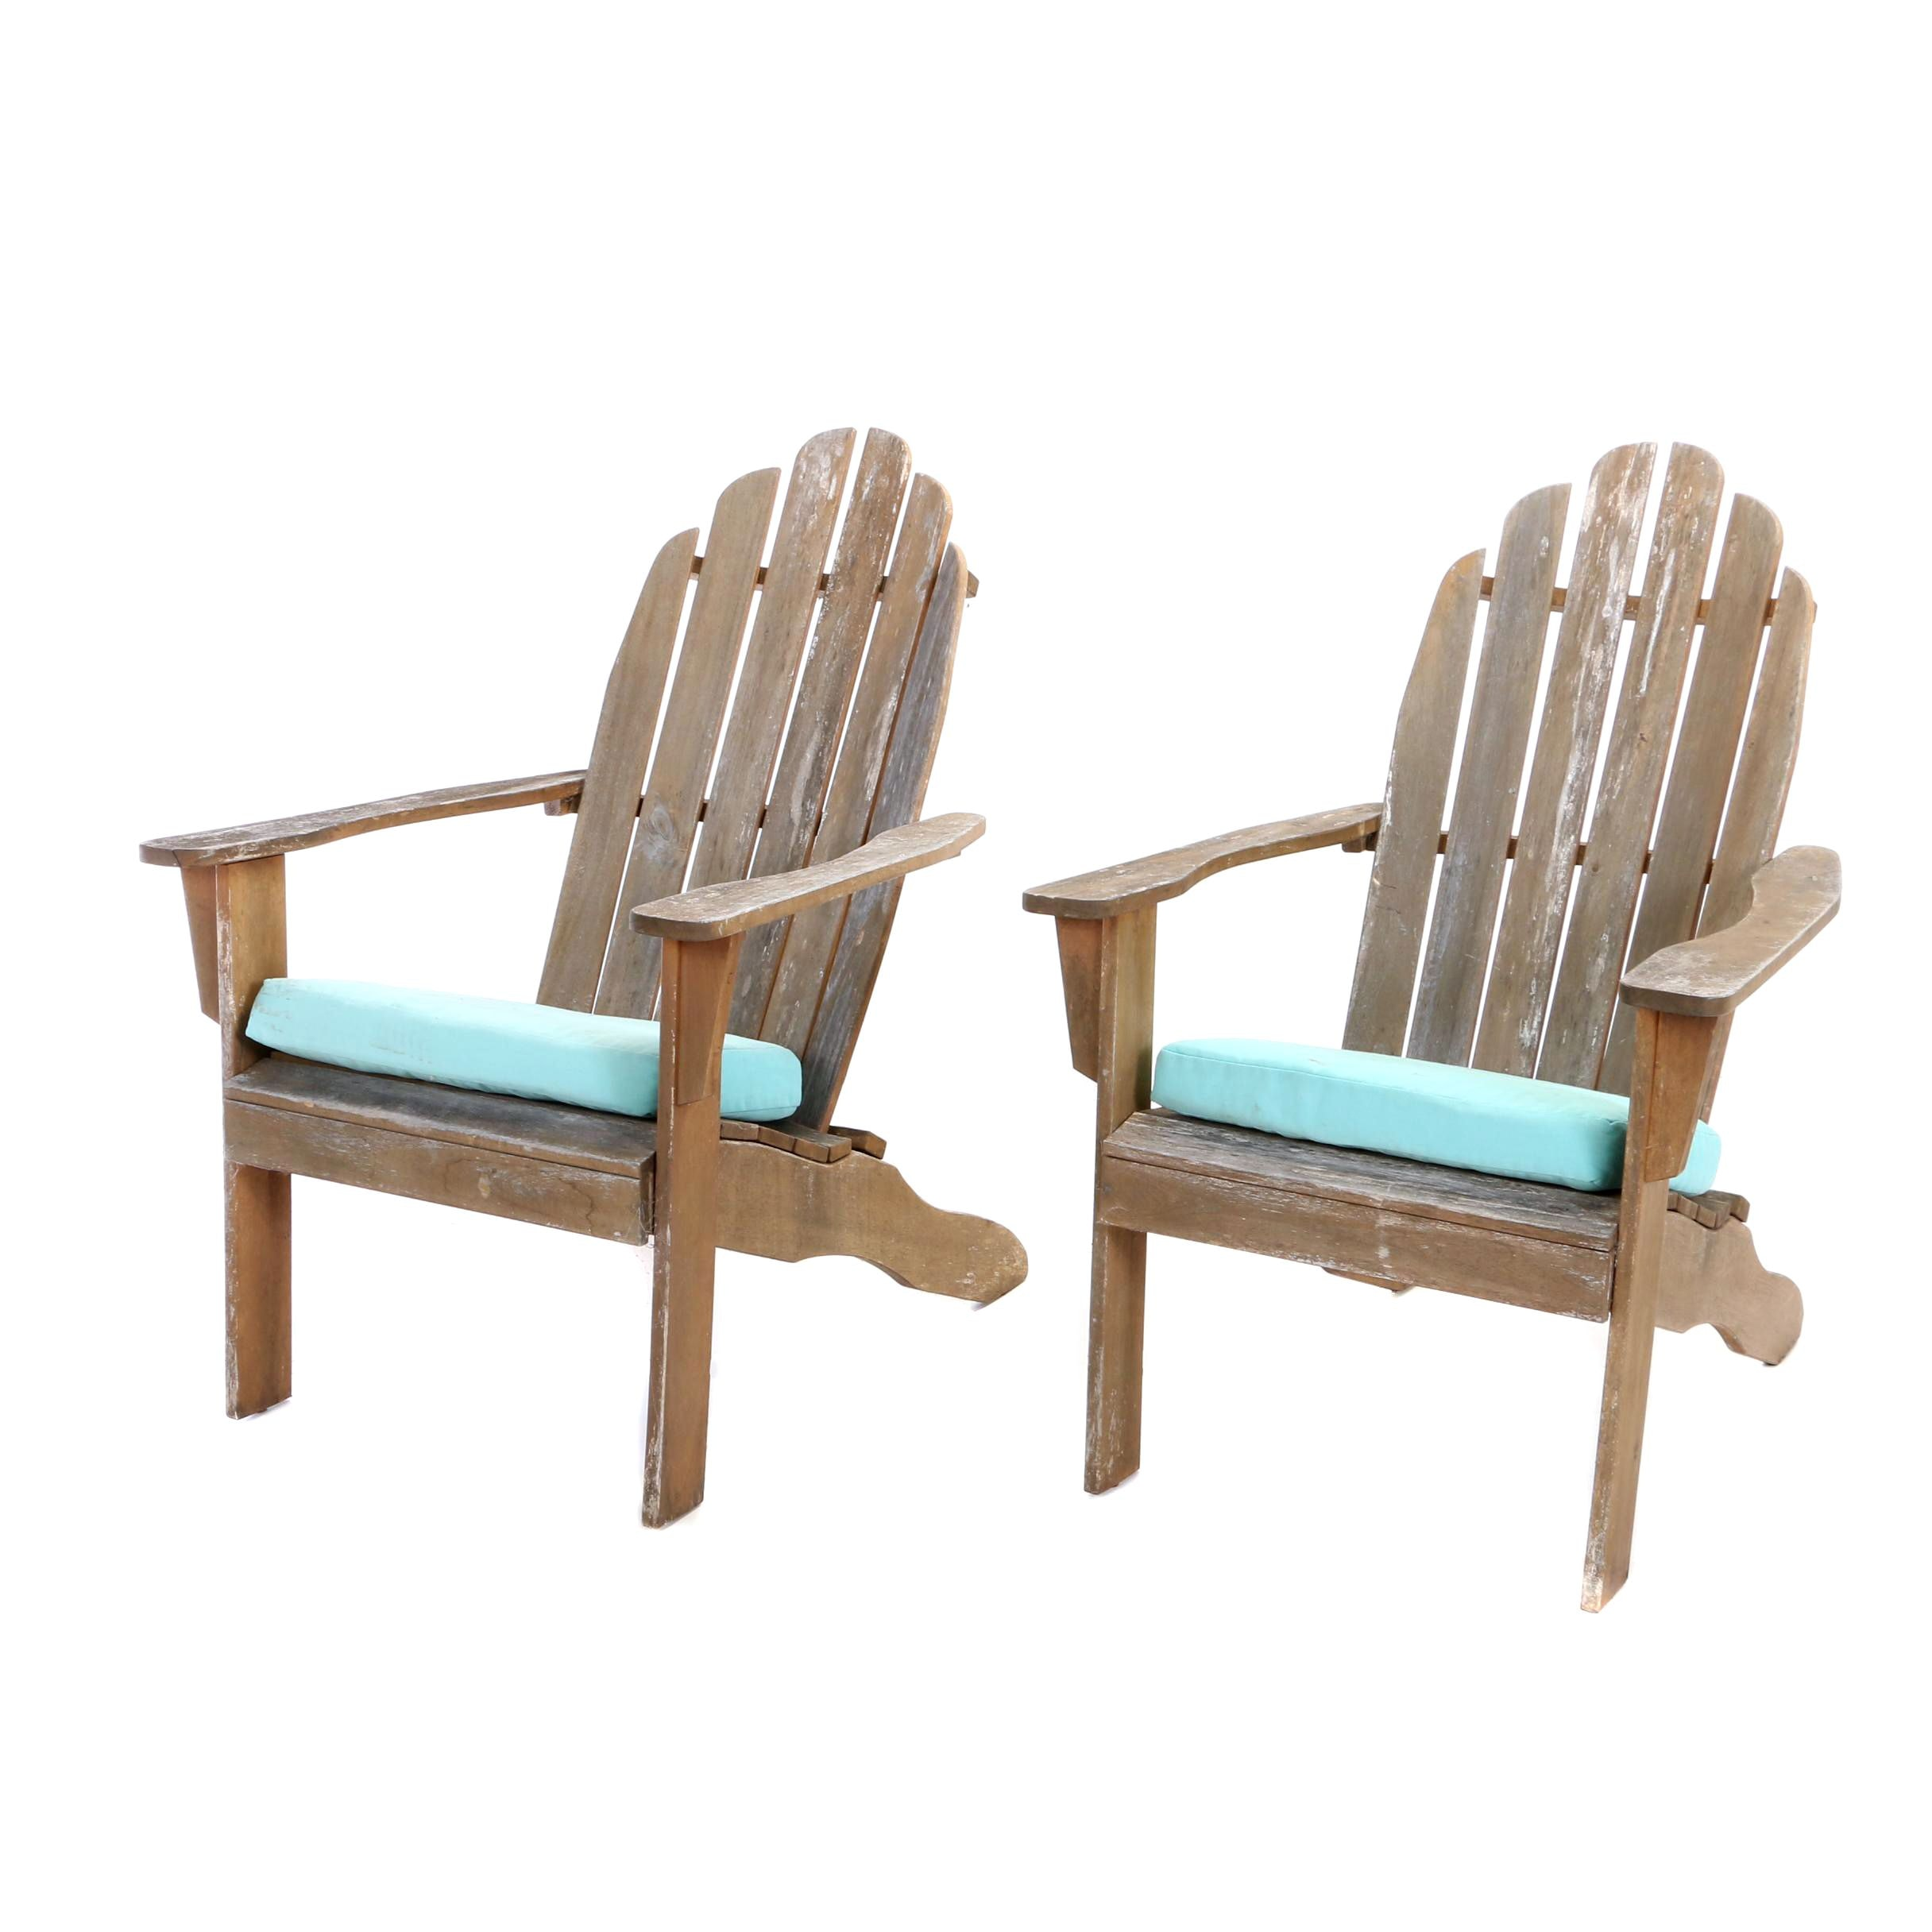 Pair of Contemporary Hardwood Patio Lounge Chairs by World Market